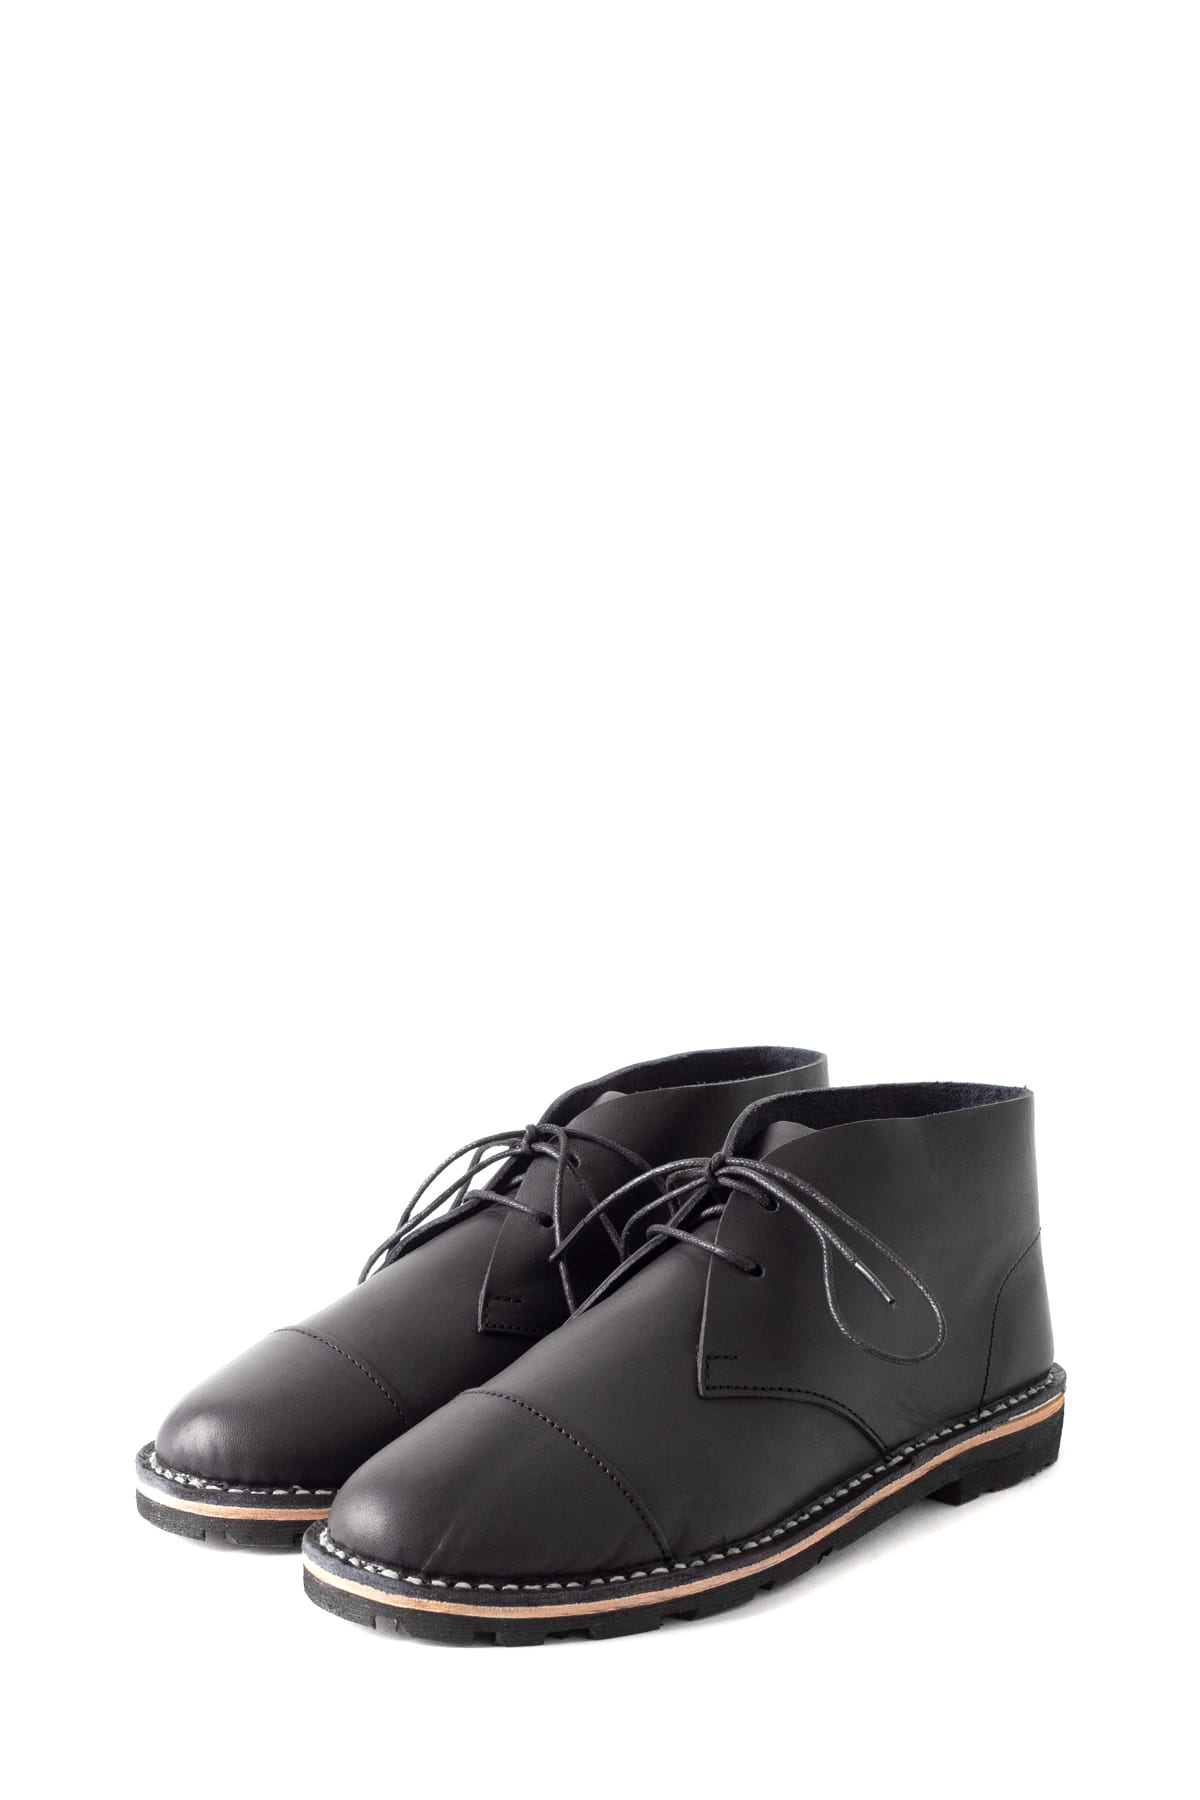 STEVE MONO : Artisanal Short Boot 10/10 (Black)